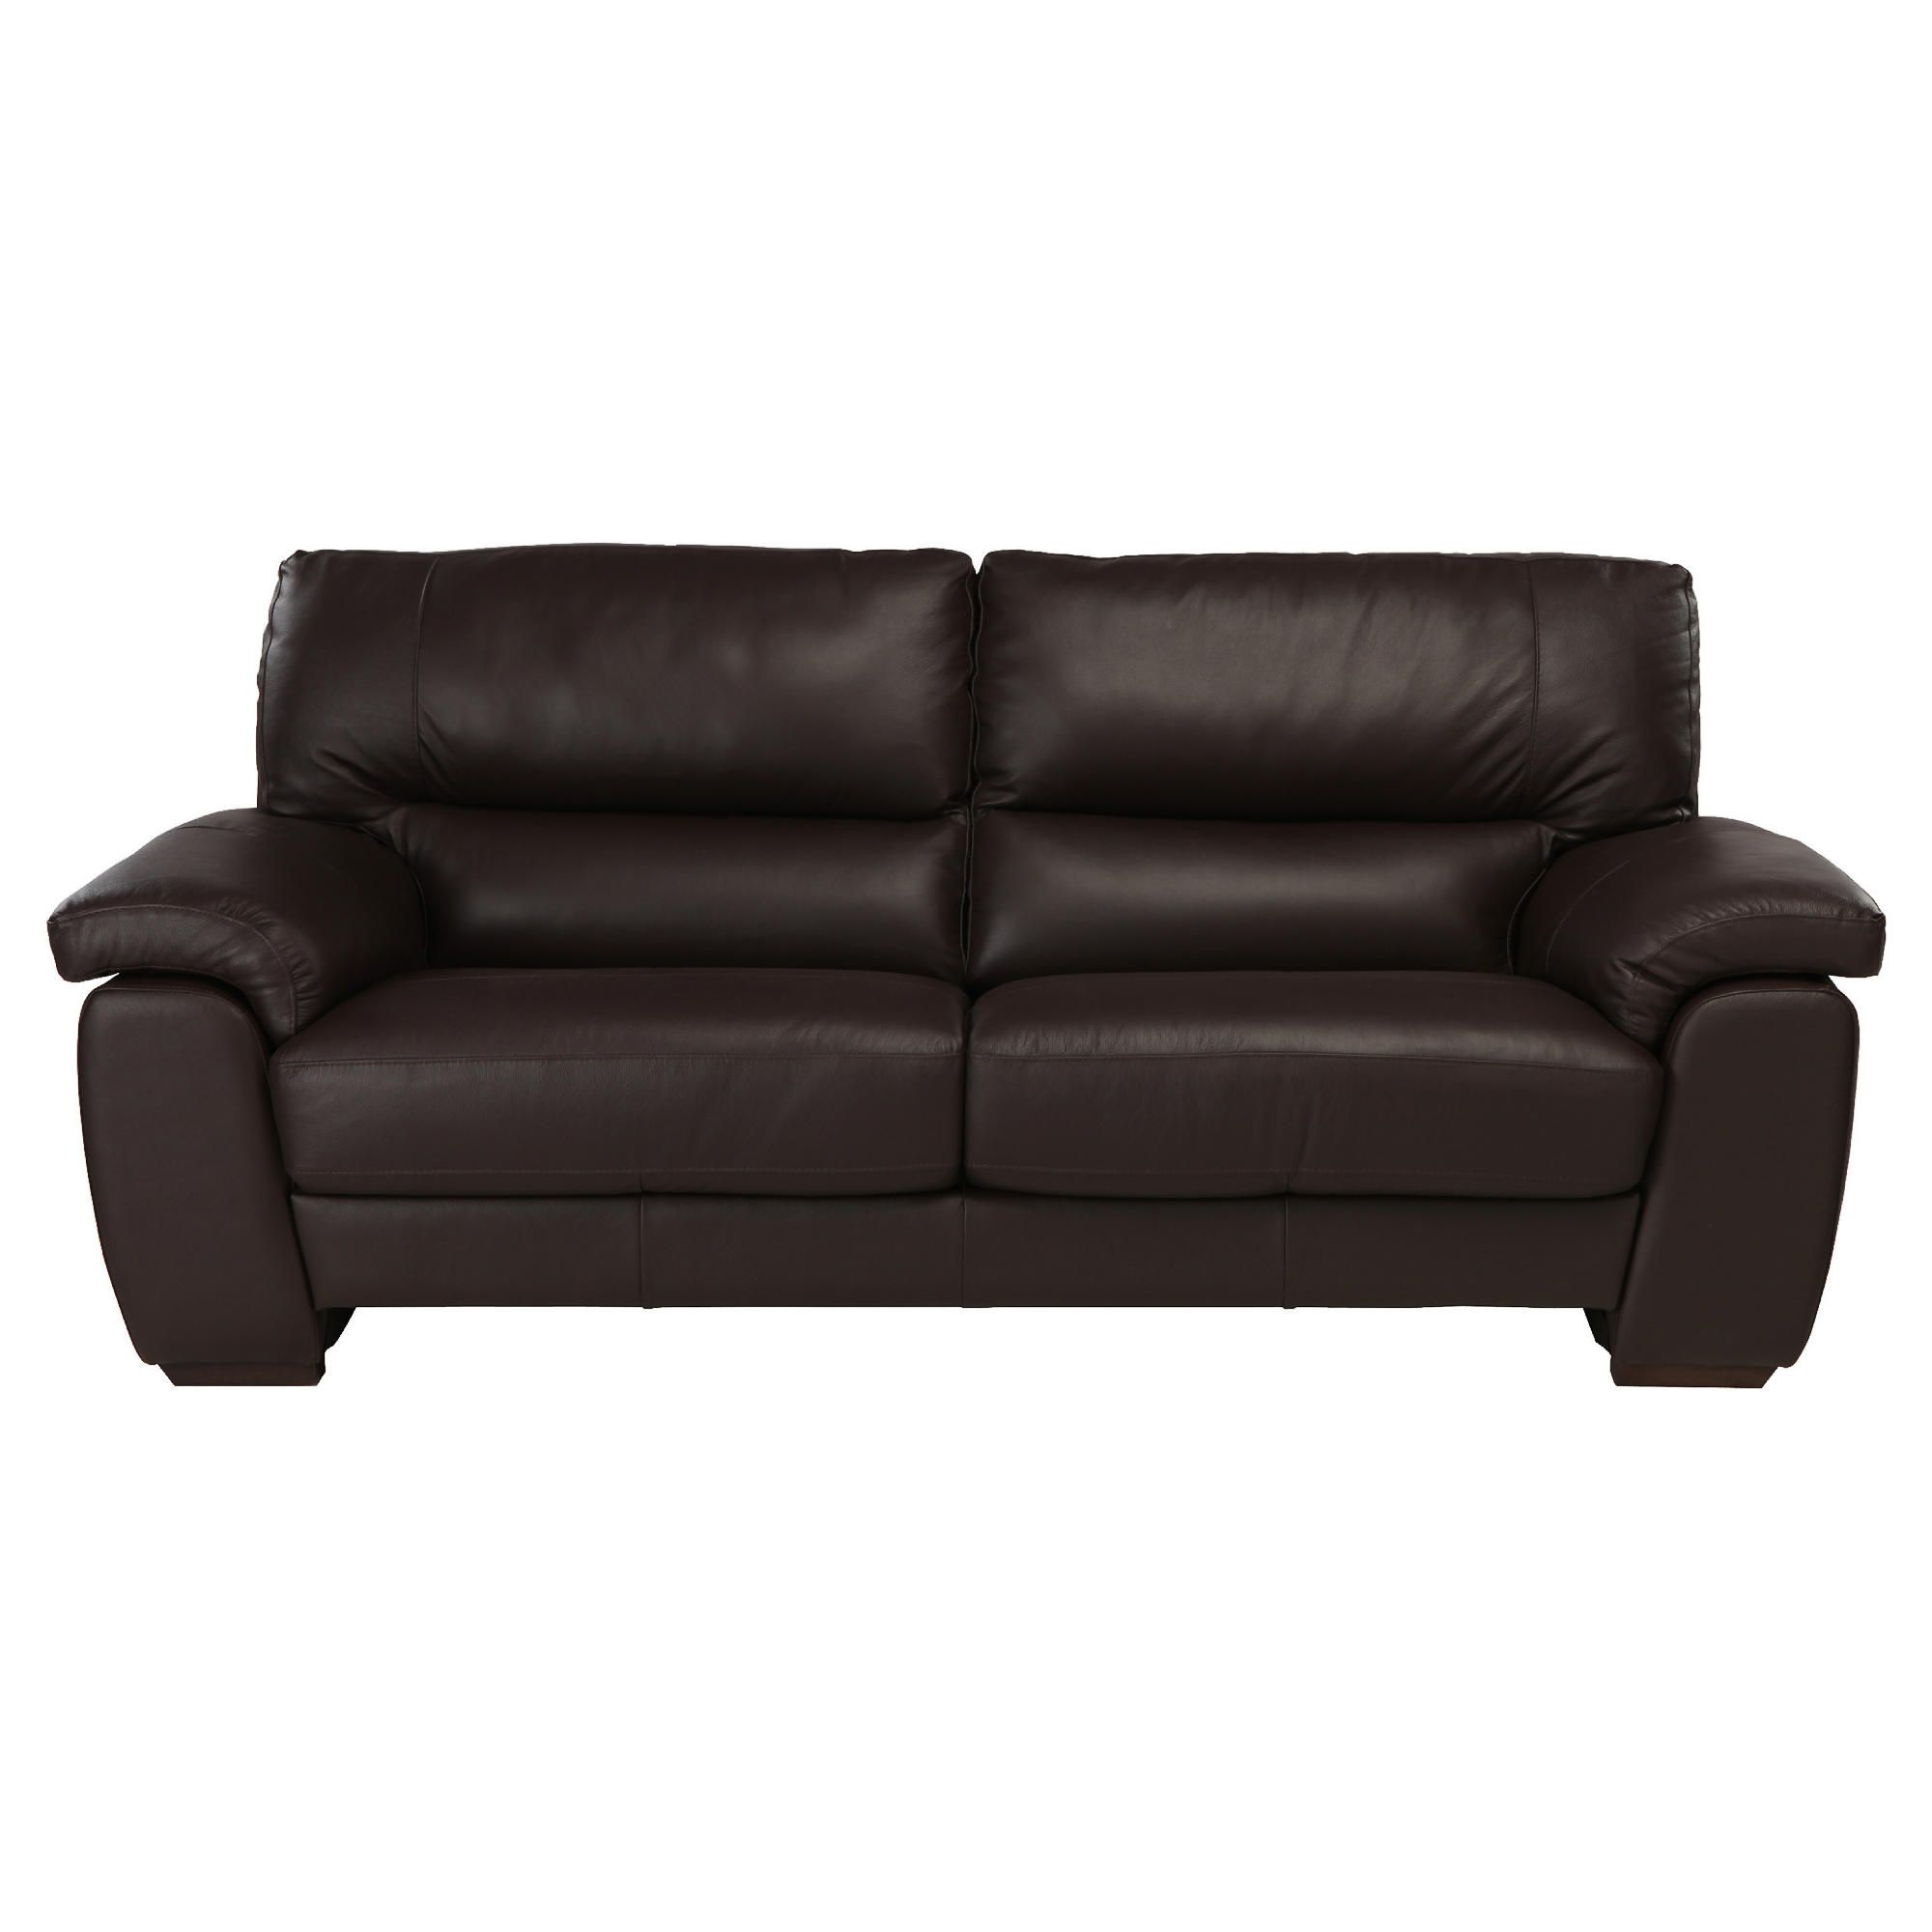 Alfredo Large Leather Sofa Brown at Tesco Direct